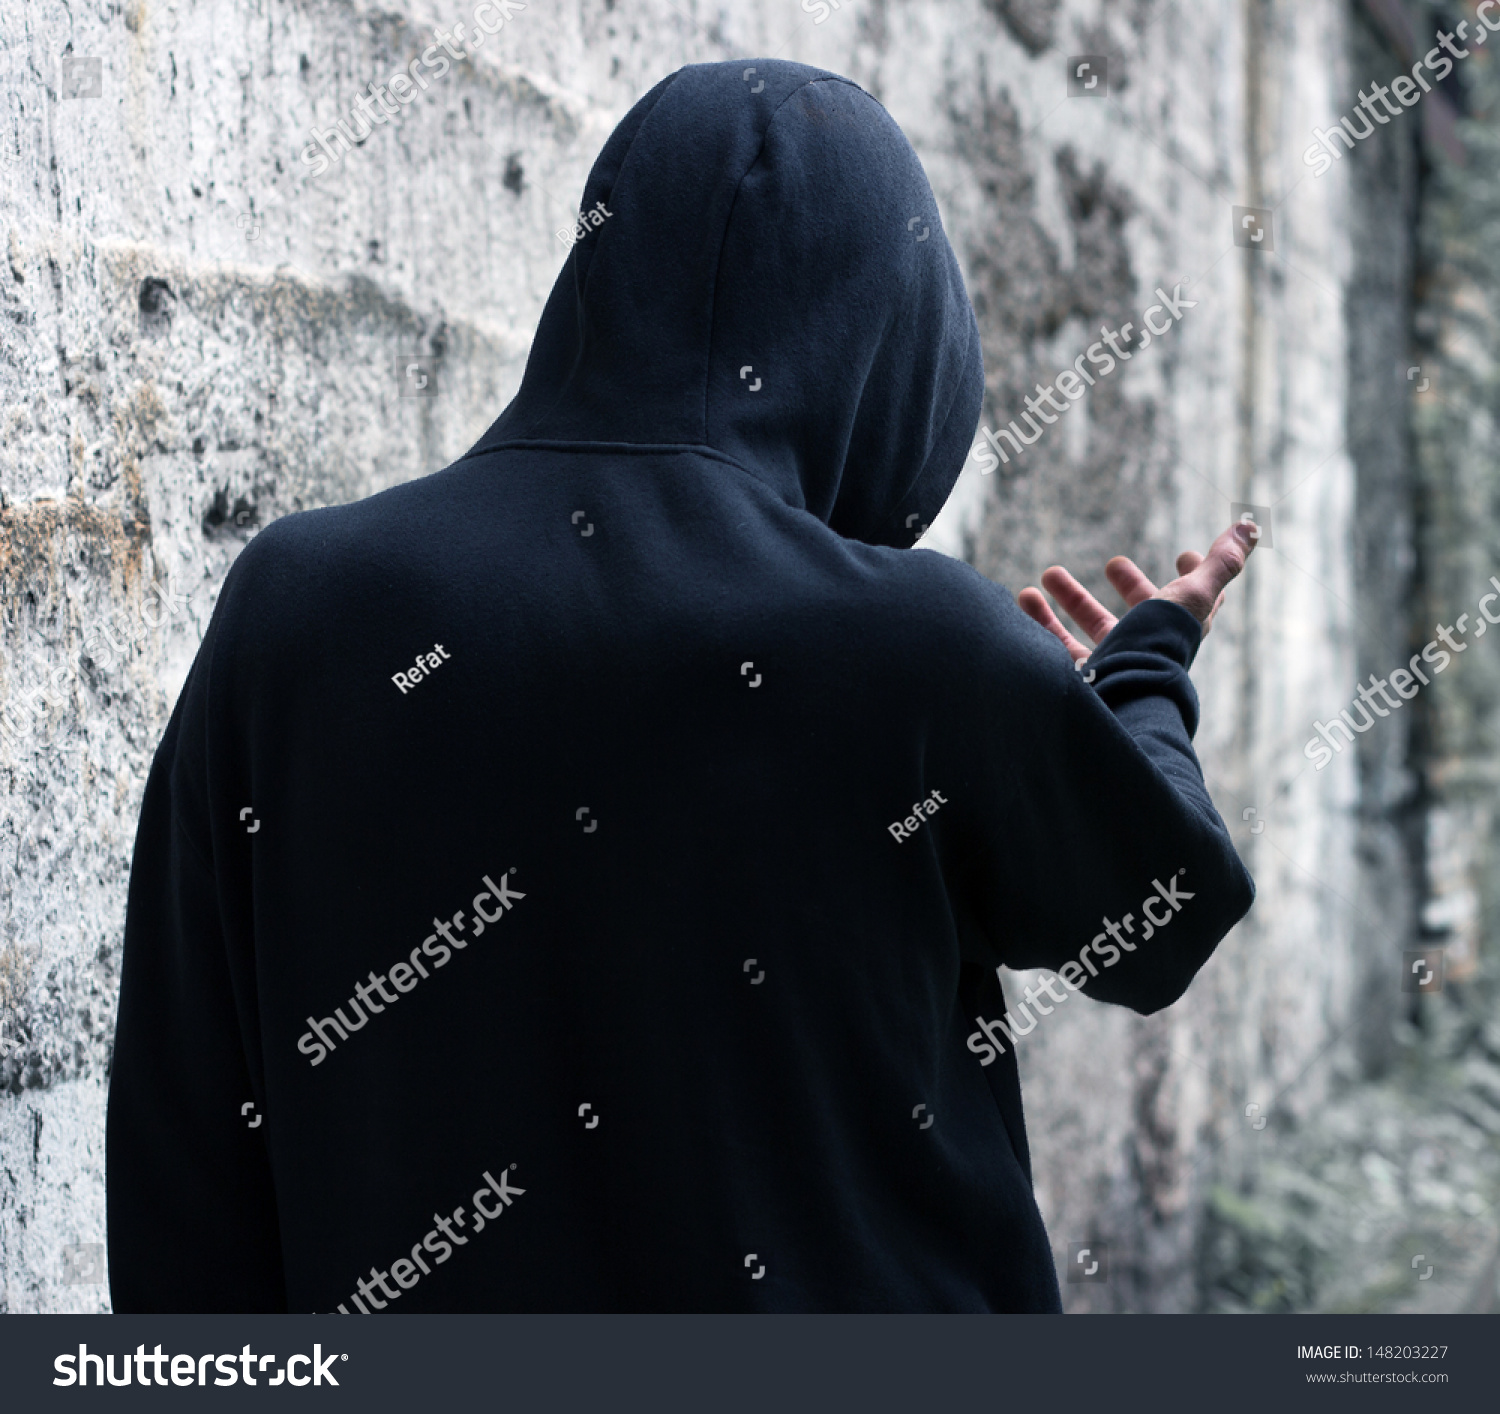 Gloomy Man Hood On Street Stock Photo 148203227 - Shutterstock